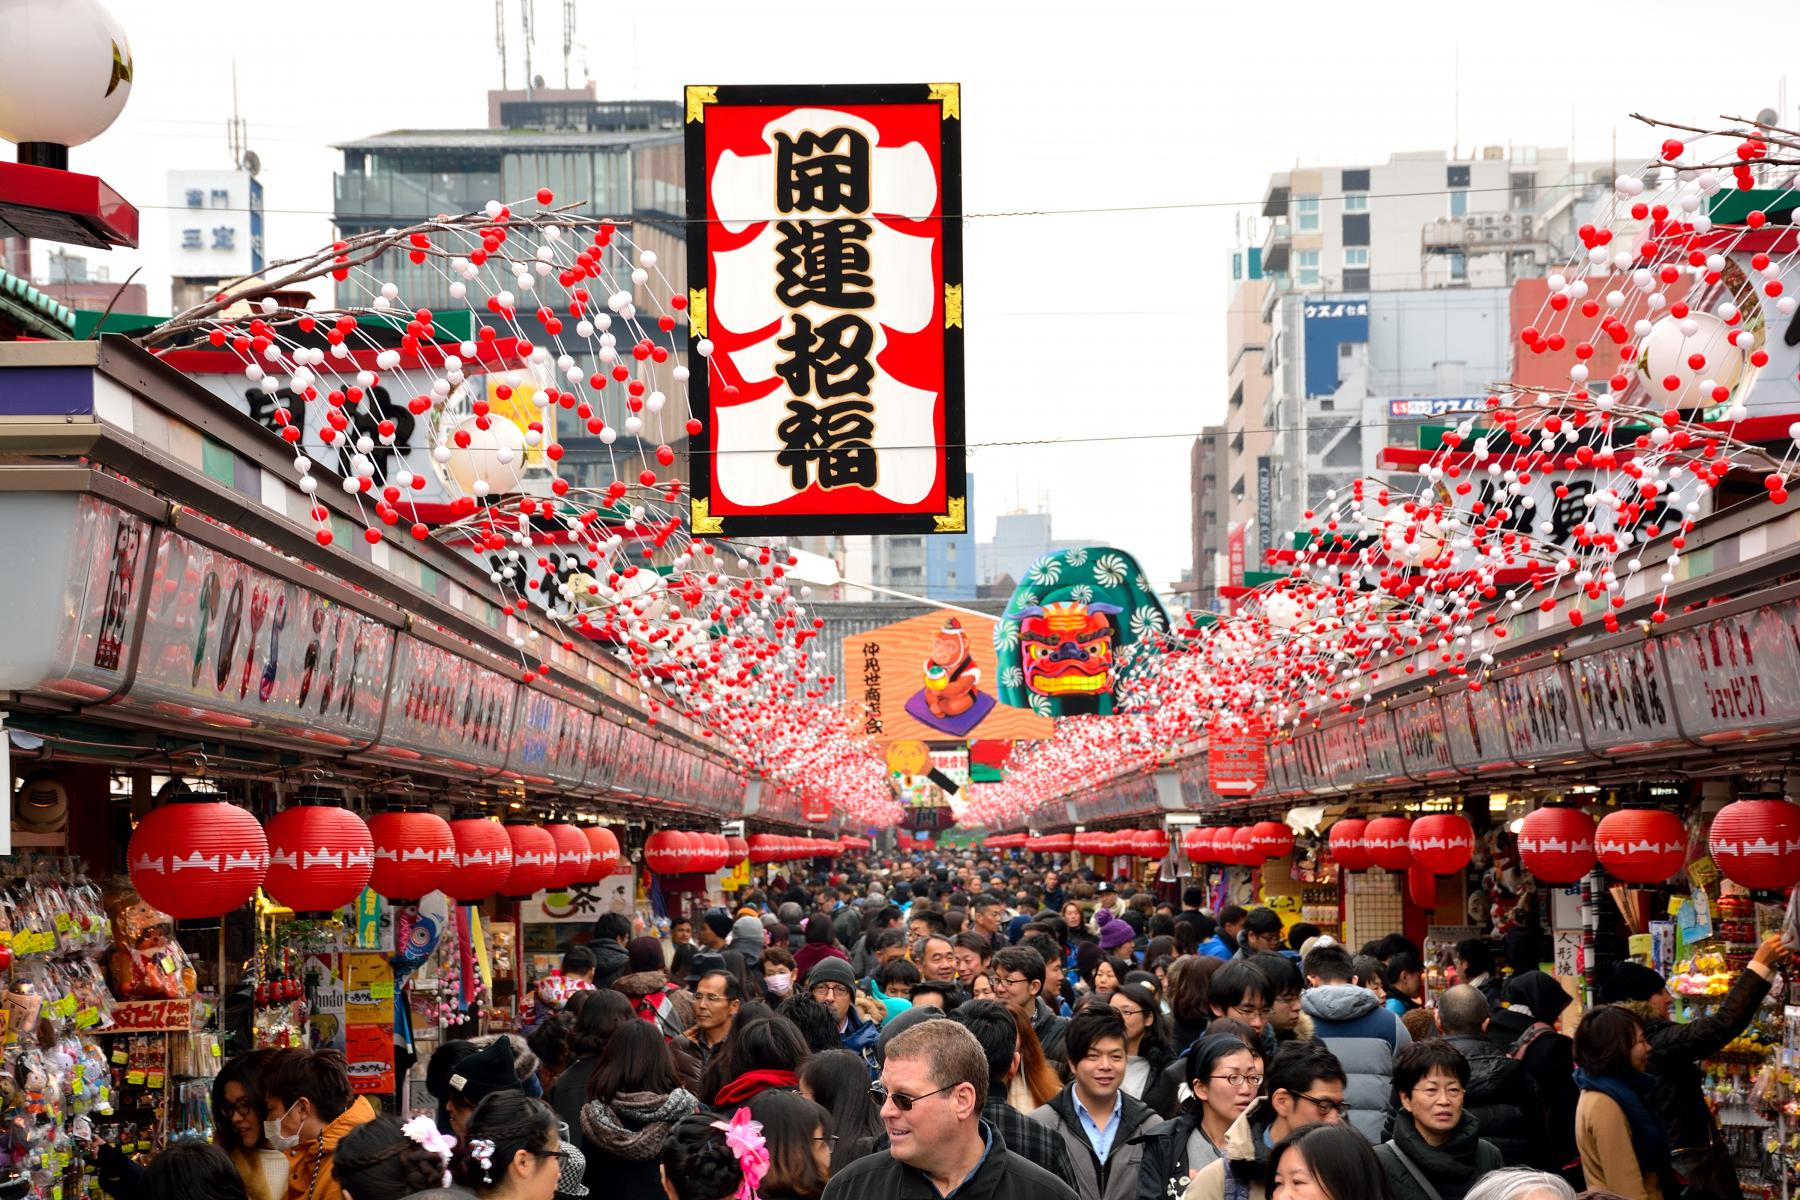 The famous Nakamise Shopping Street is crowded with tourists and visitors outside Asakusa Temple in Tokyo, Japan